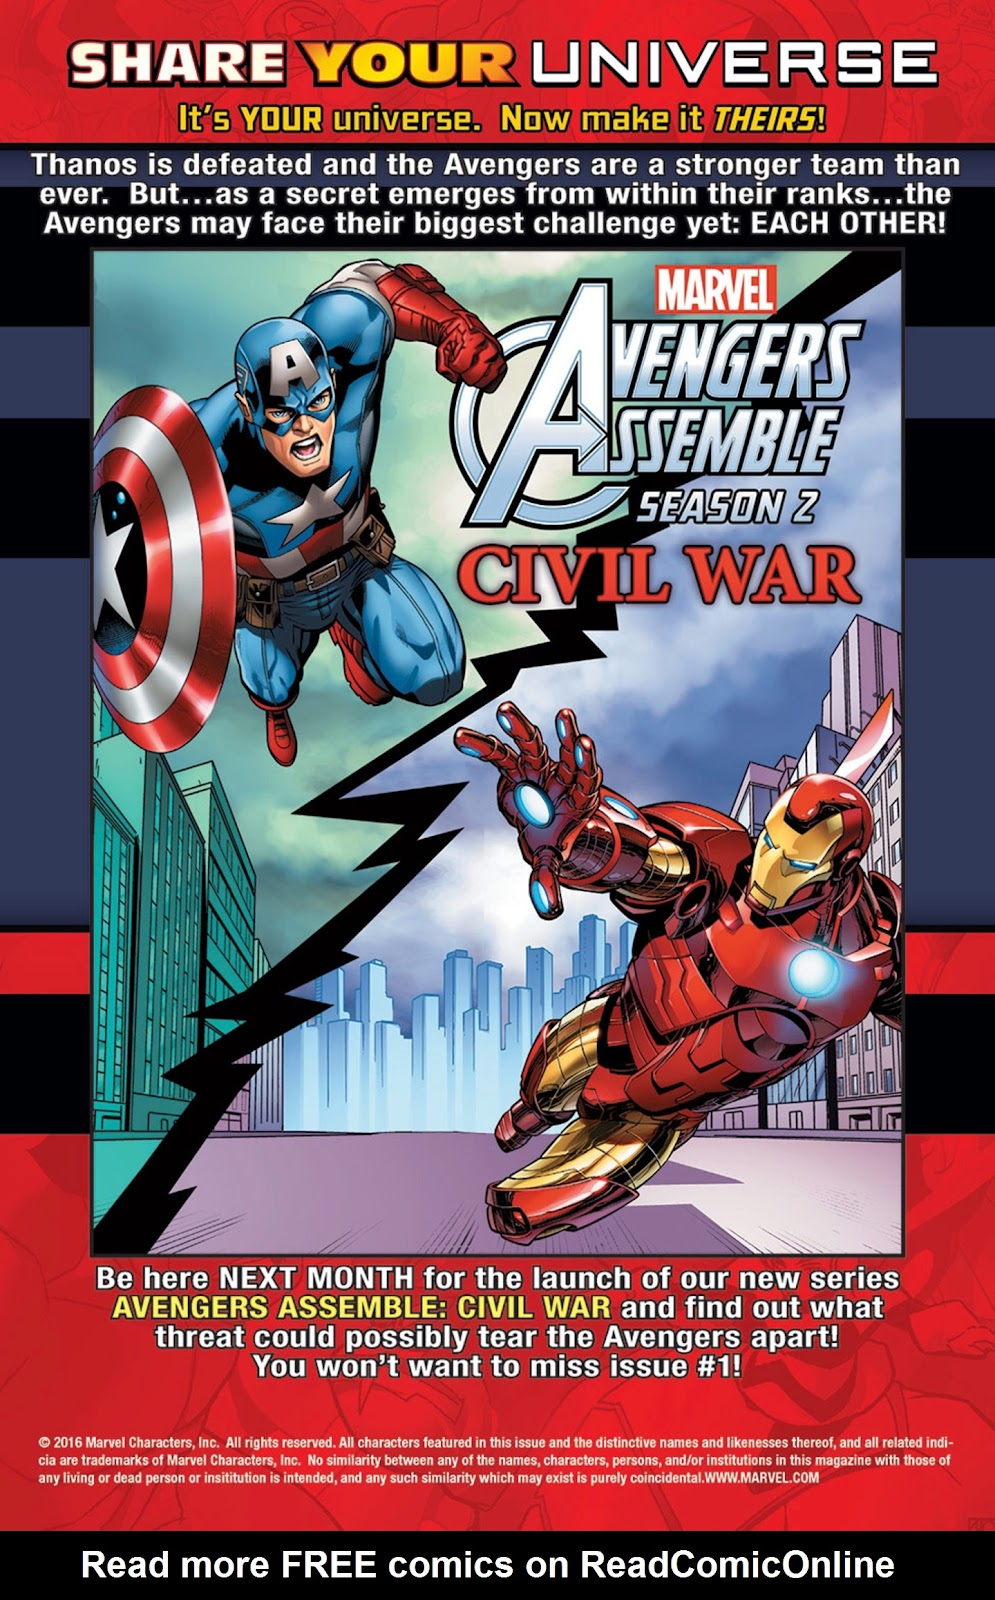 Read online Marvel Universe Avengers Assemble Season 2 comic -  Issue #16 - 30